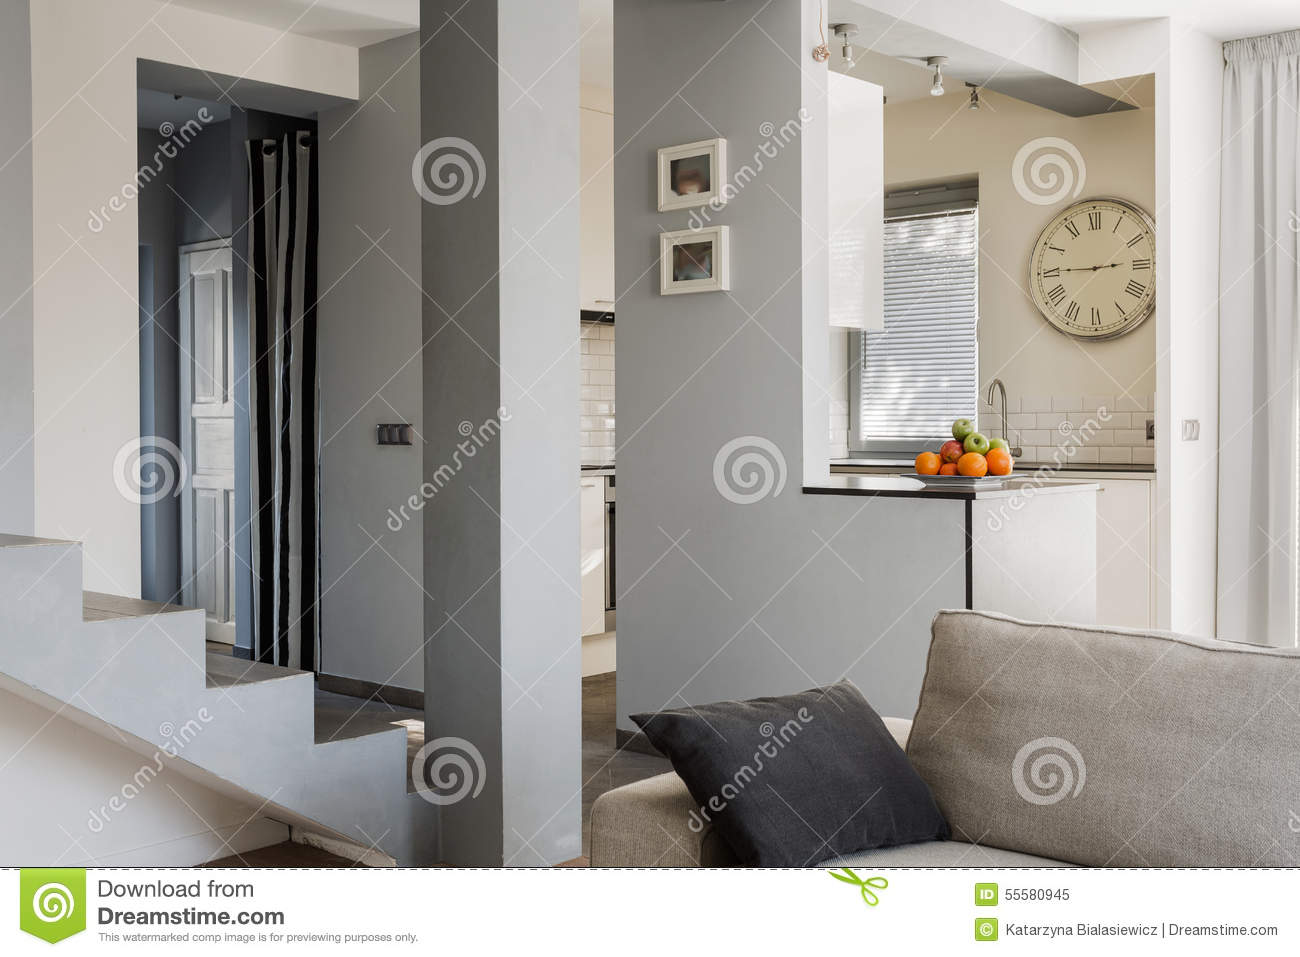 treppe im wohnzimmer stockfoto bild 55580945. Black Bedroom Furniture Sets. Home Design Ideas